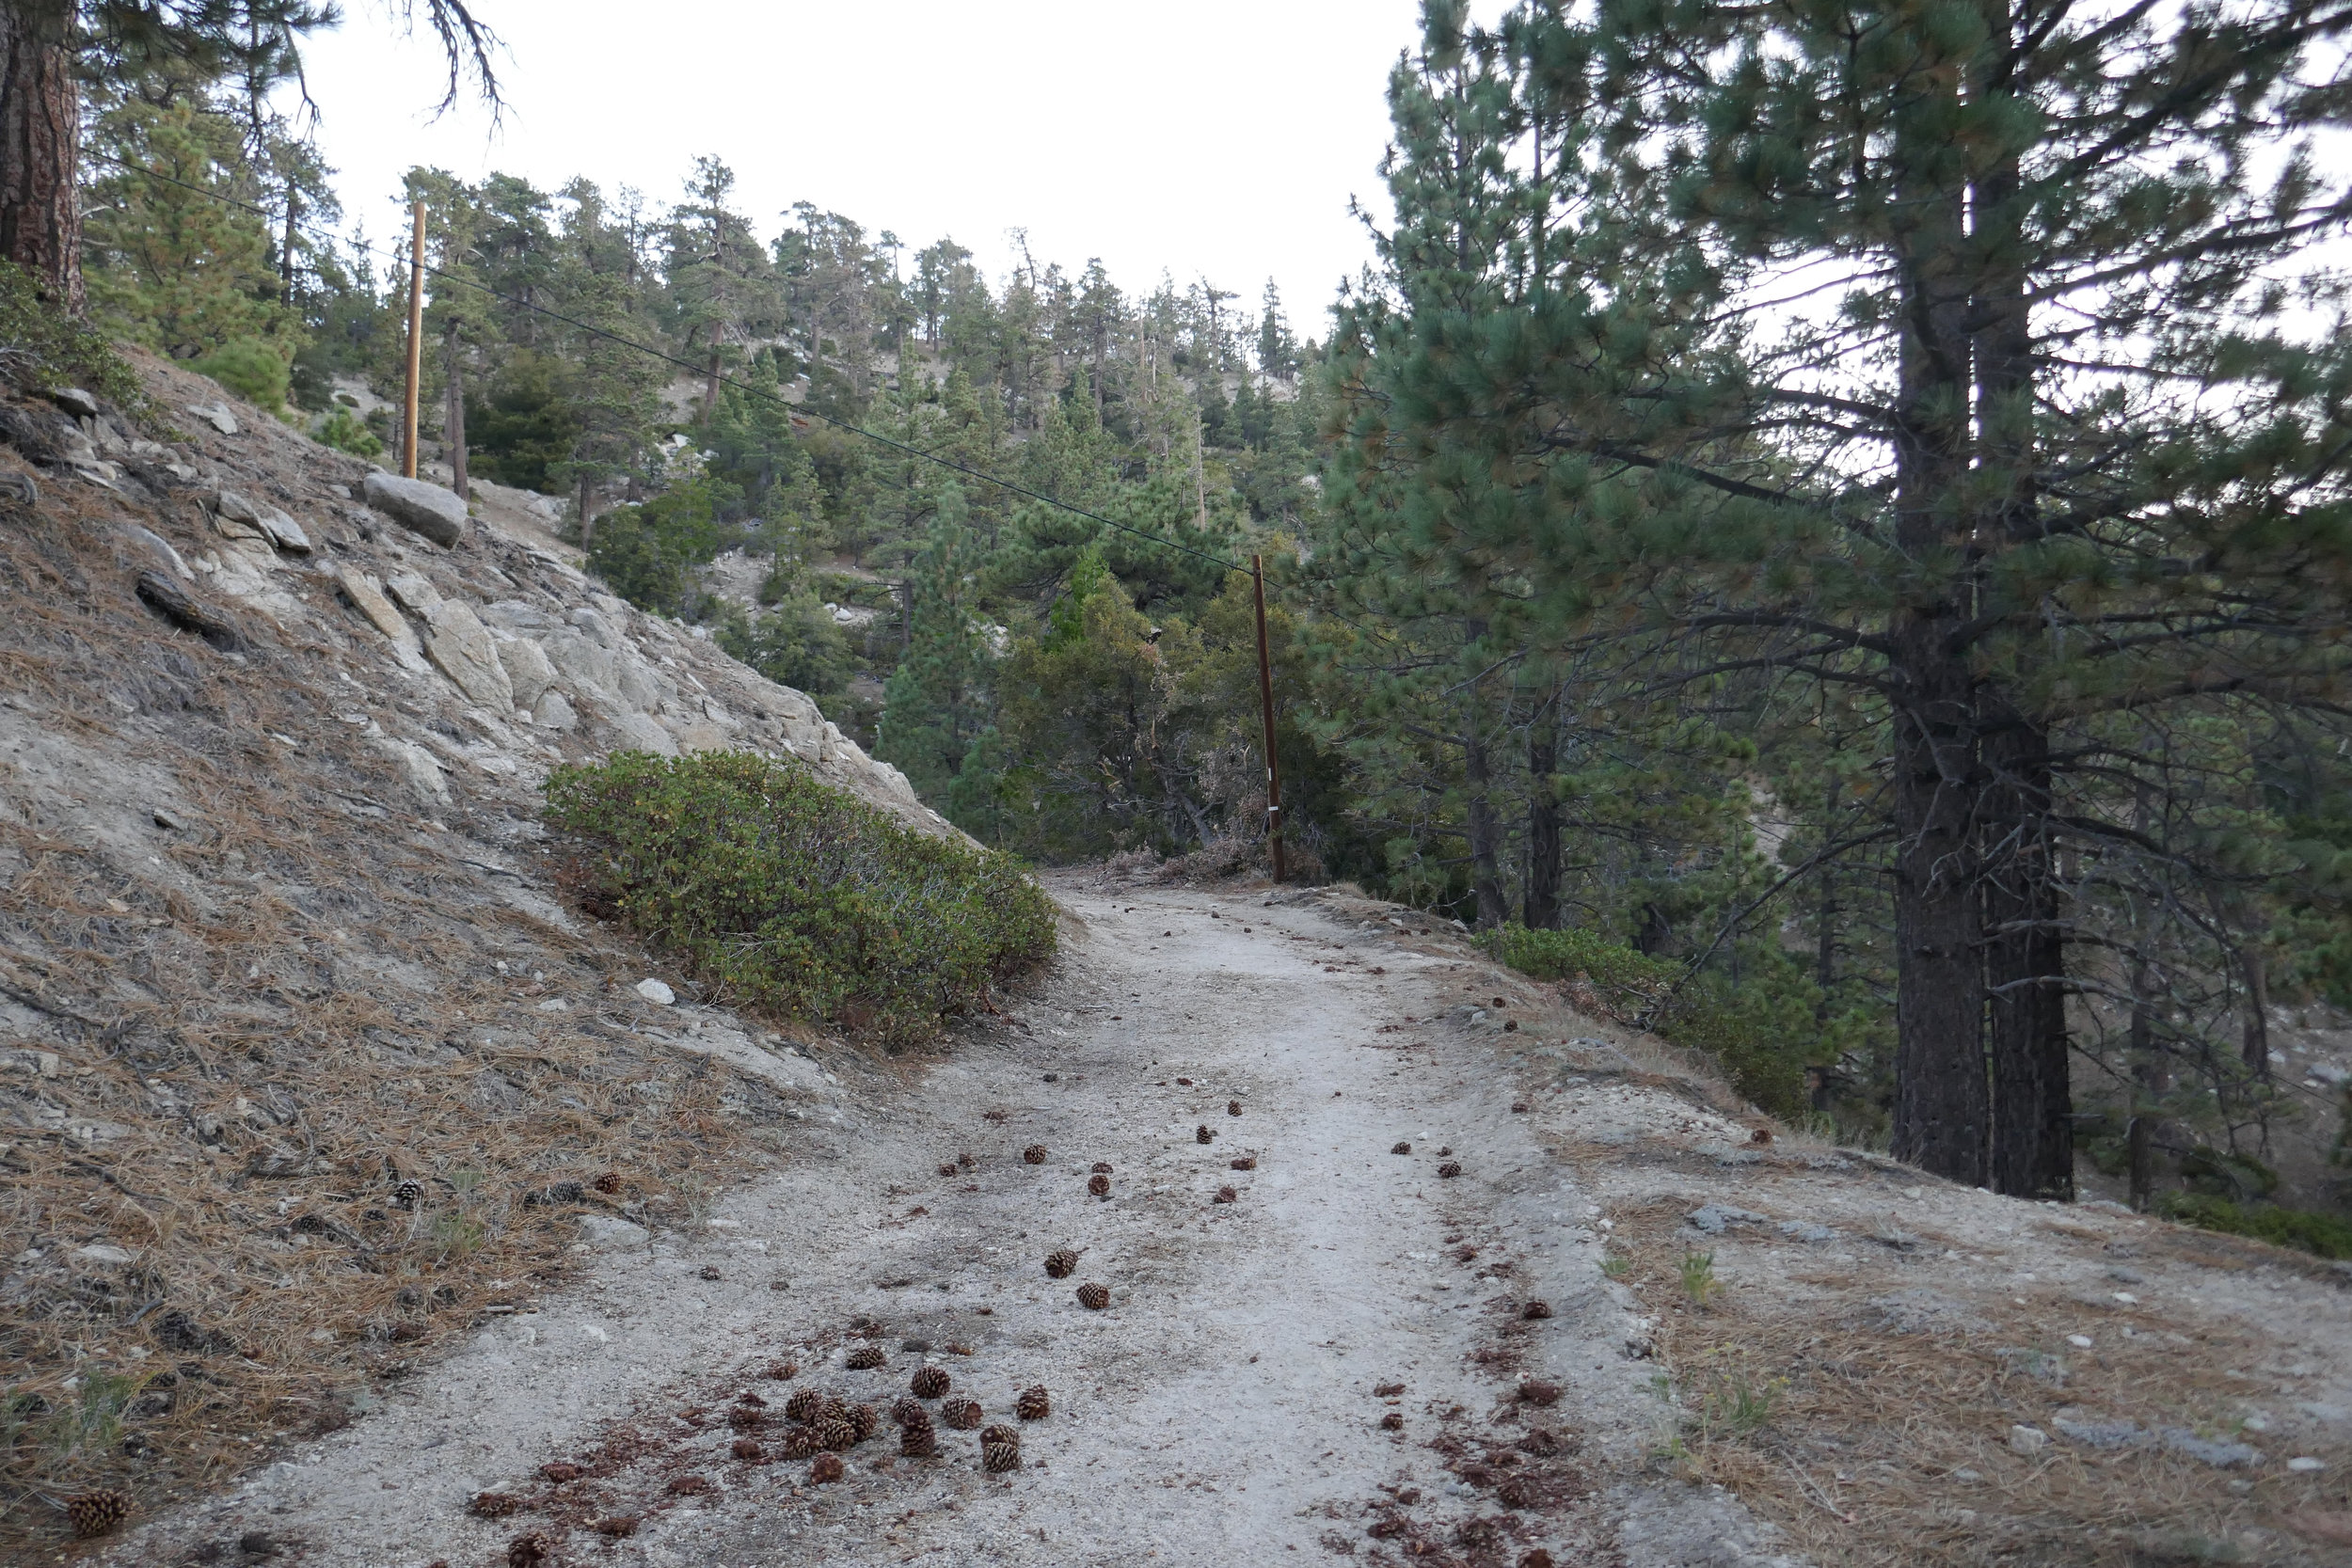 We arrive at the turnout/parking area around 6 am and start up an old fire road.